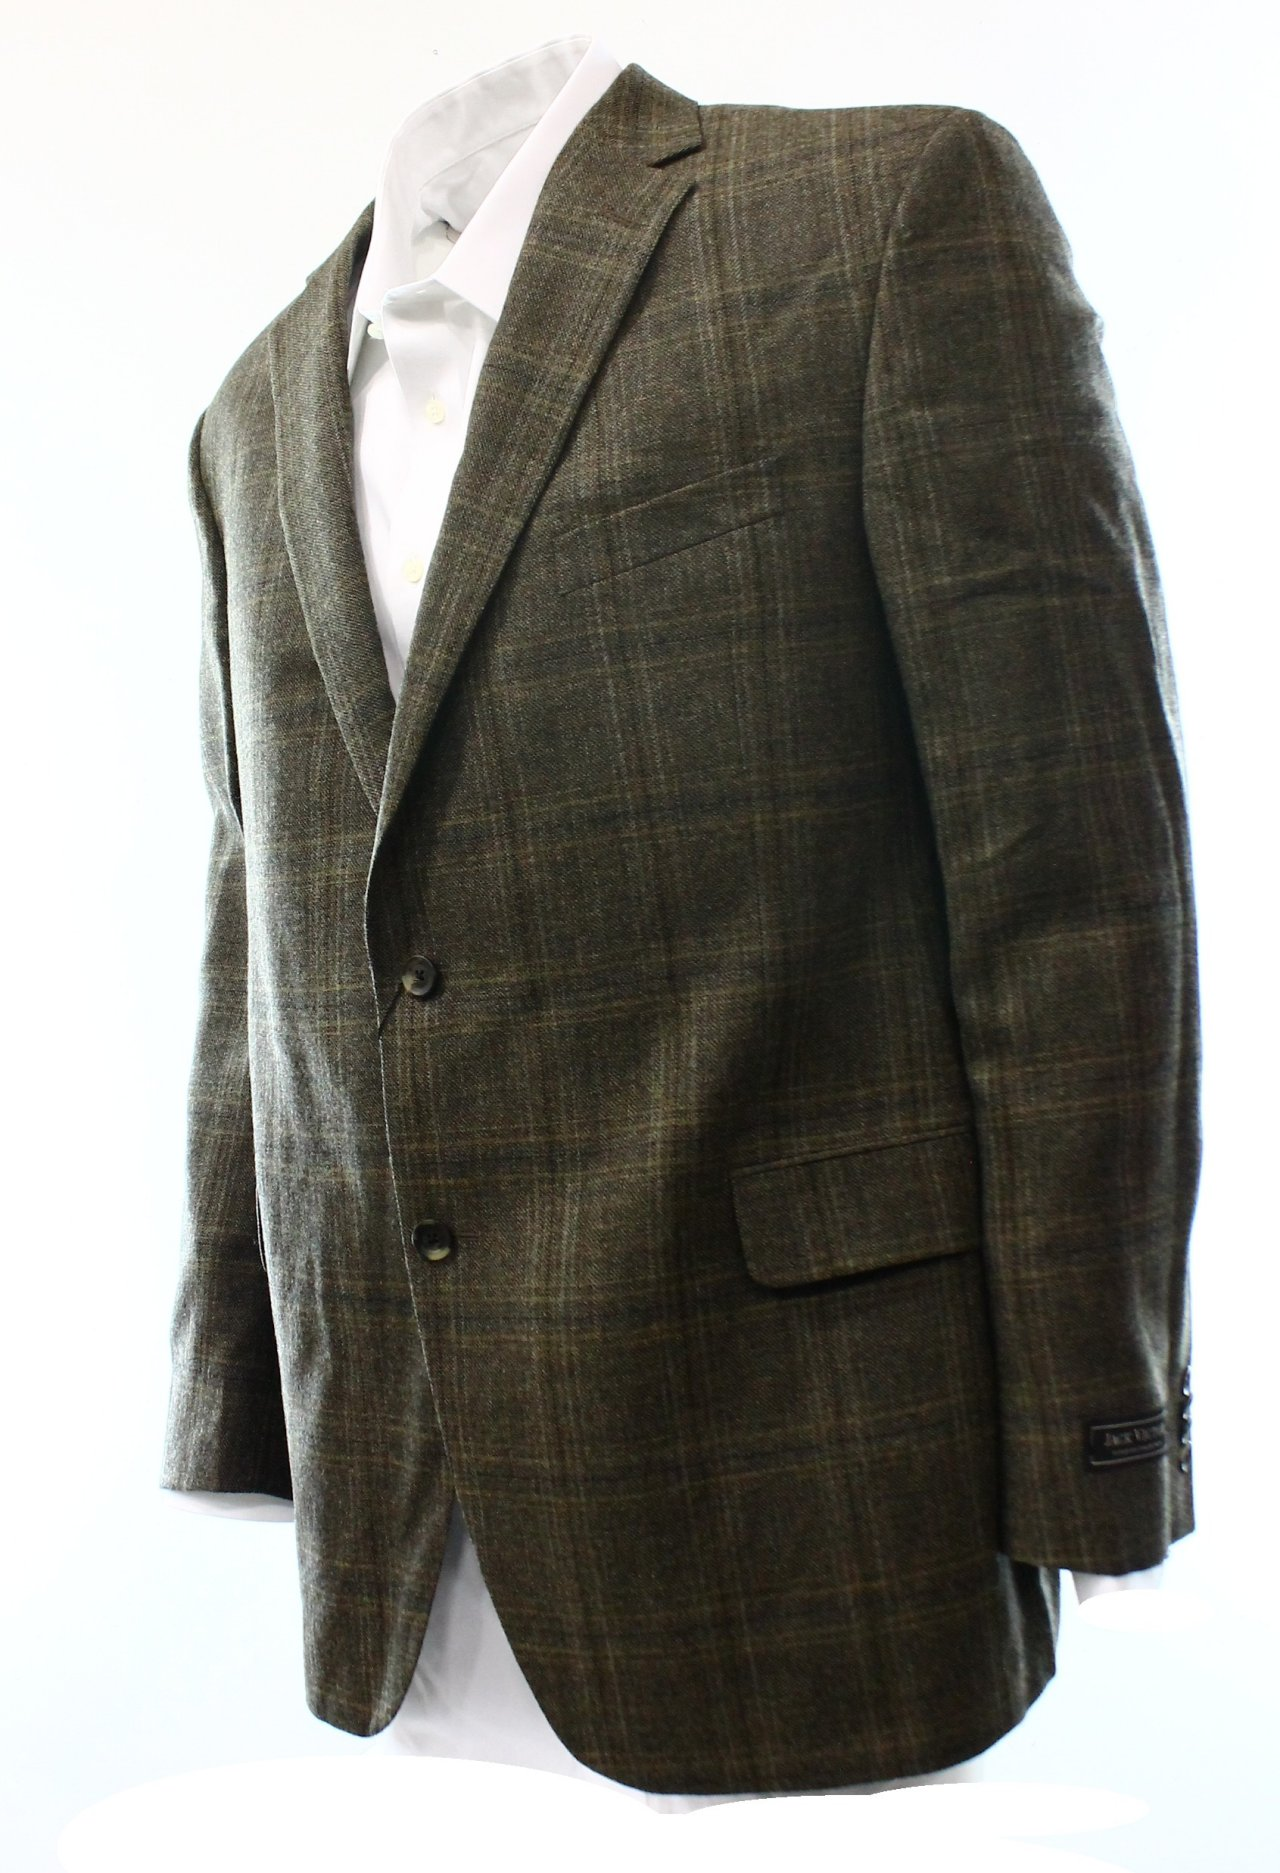 Find great deals on eBay for sport coat 50r. Shop with confidence. Skip to main content. eBay: Jos A Bank Men's Blazer Sport Coat Silk Wool Houndstooth Windowpane Size 50R. Jos. A. Bank · 50 · Regular. $ Buy It Now. Free Shipping. Free Returns. CHAPS Ralph Lauren Men's Houndstooth Blazer Sport Coat Blue Size 50R Rayon Blend.